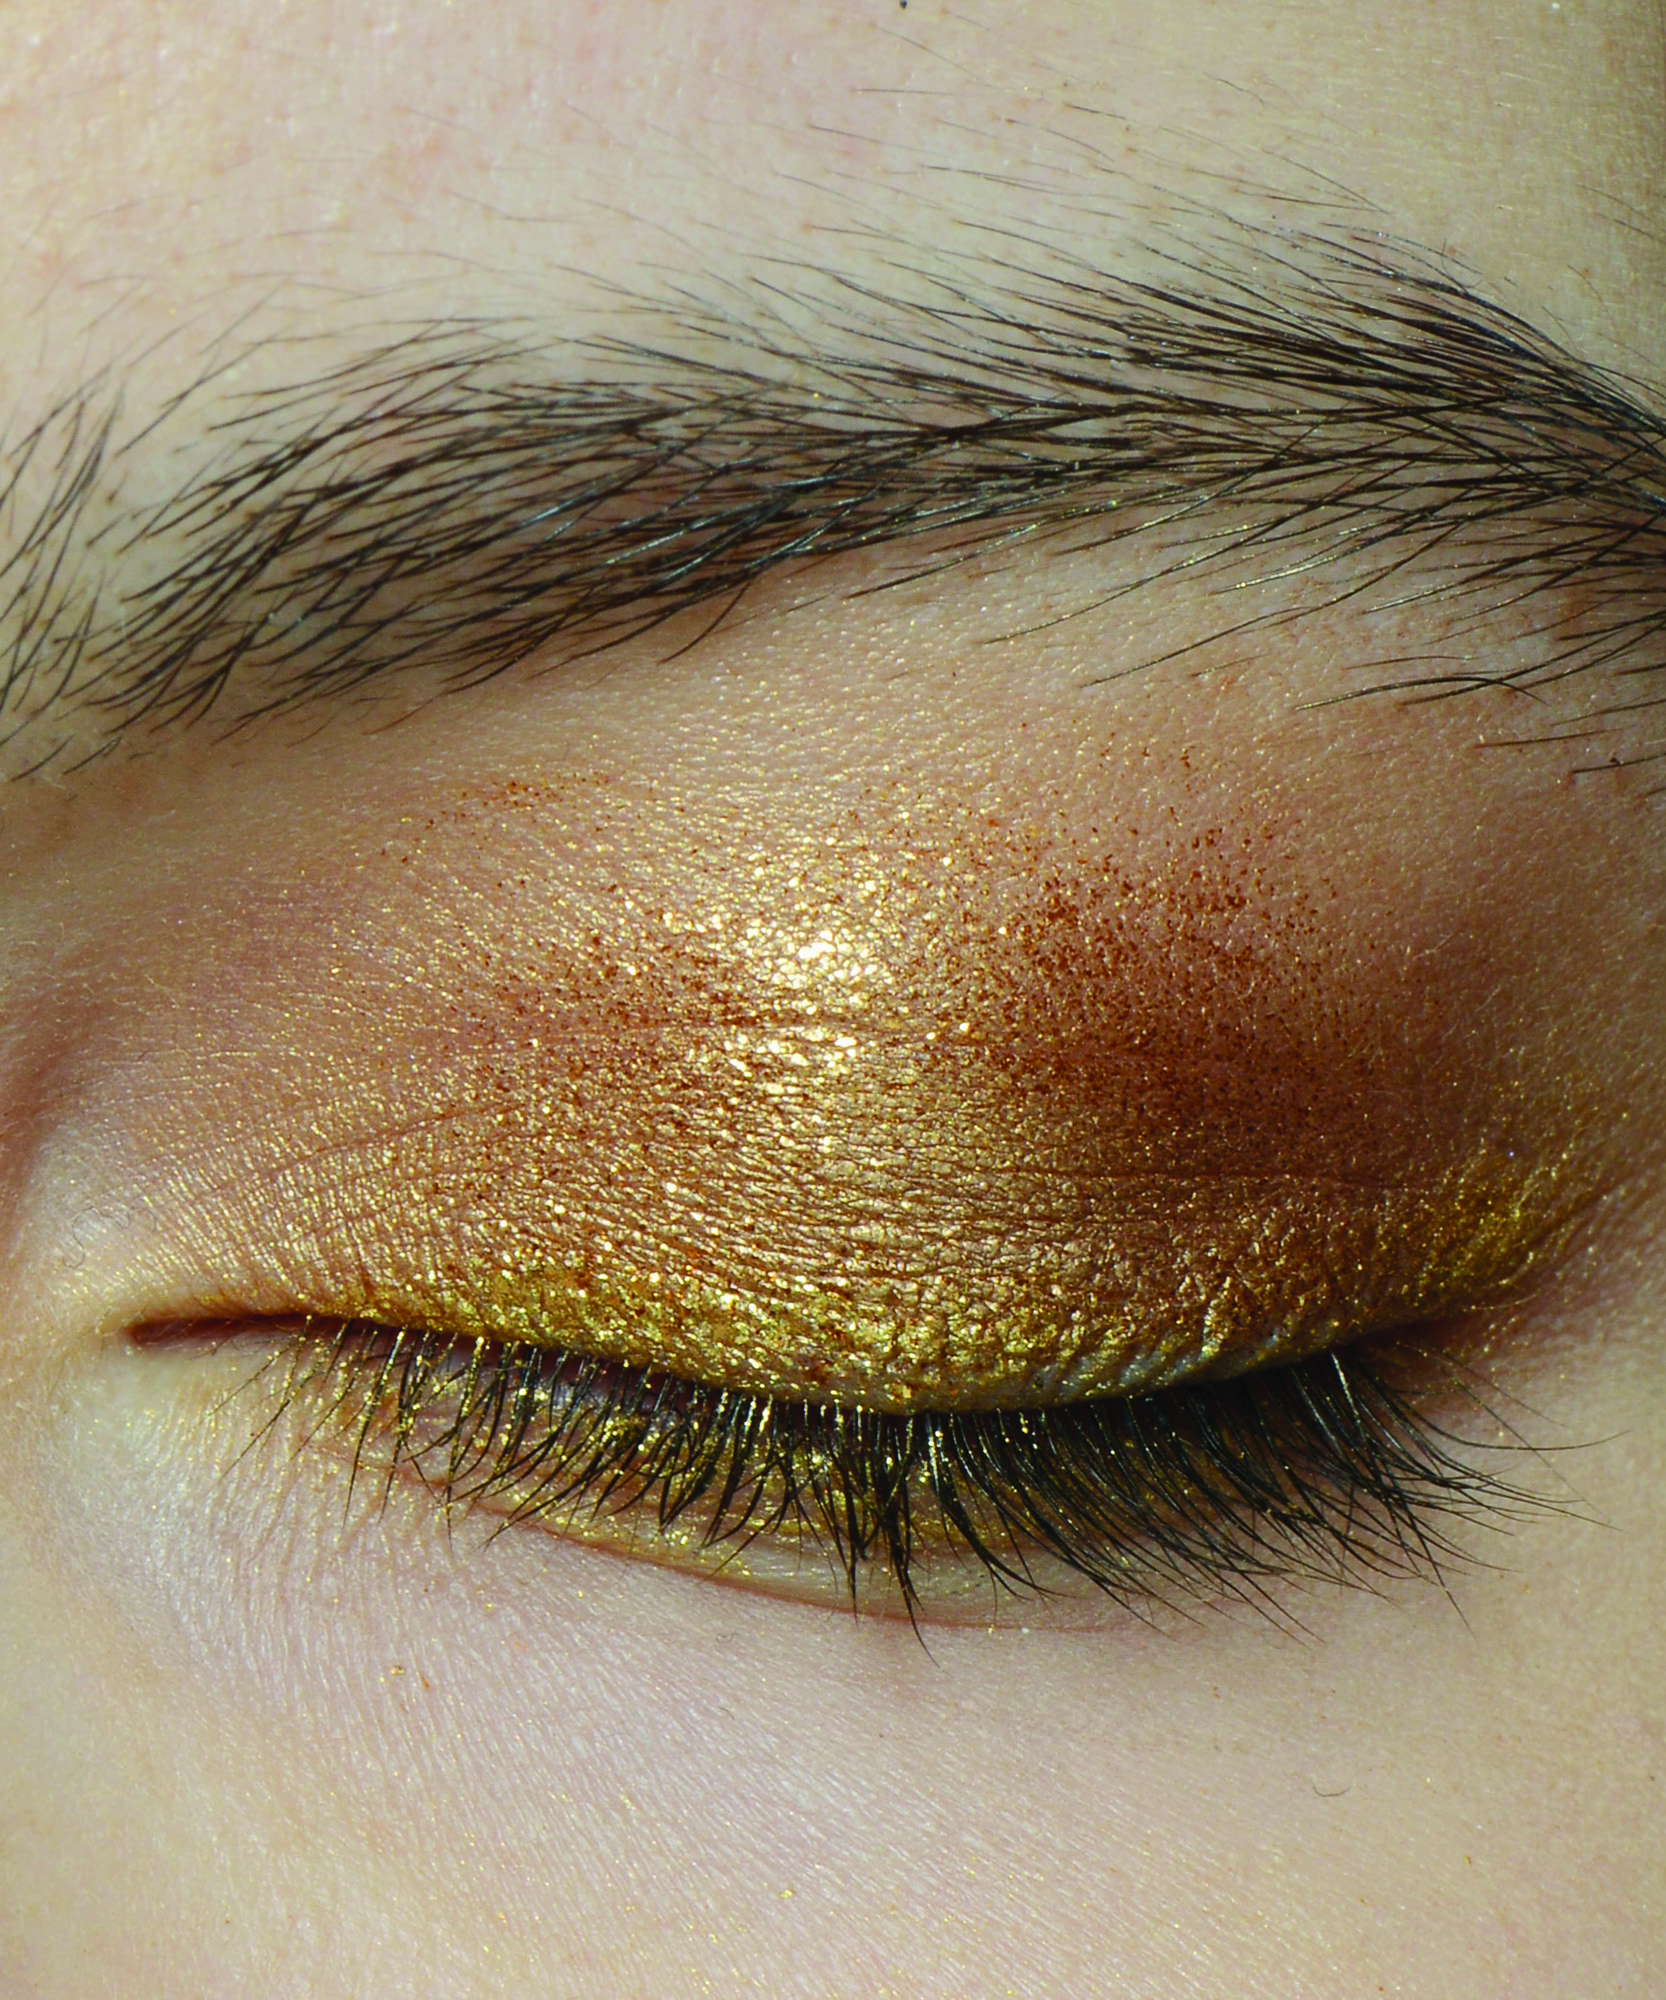 This $4 Beauty Contraption Looks Bizarre, But It Could Be anEyebrow Game Changer